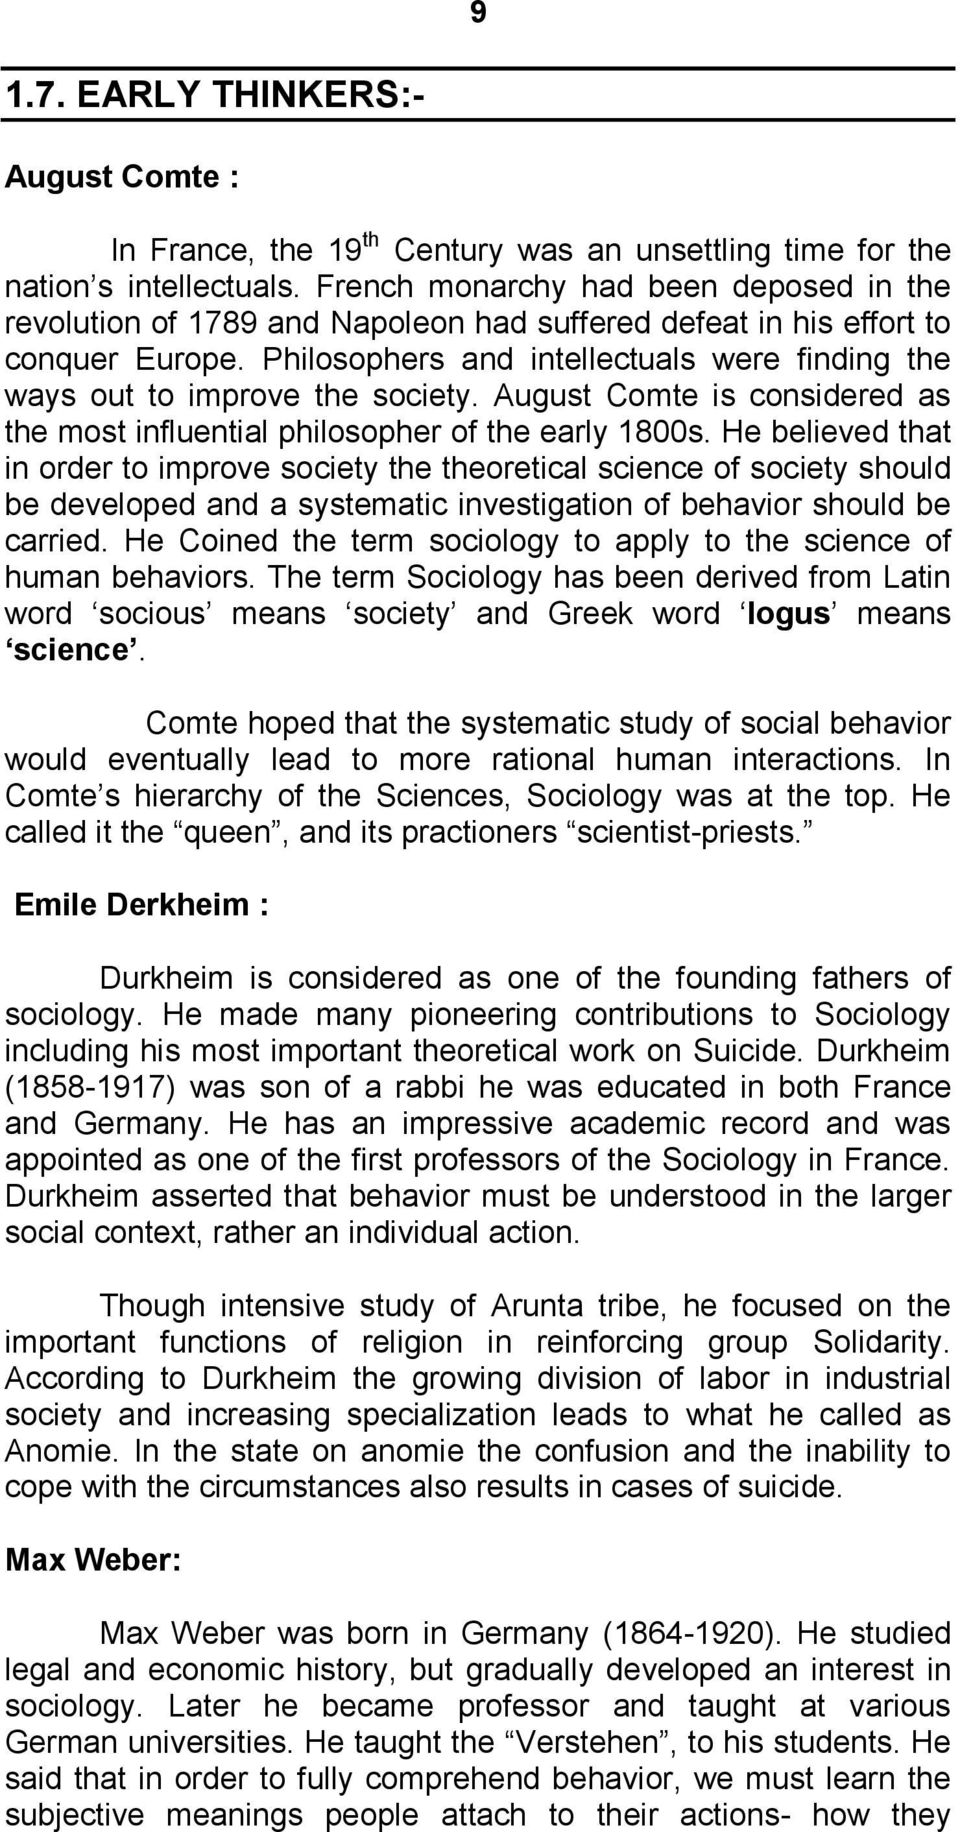 durkheim and poverty essay These characteristics include poverty, dilapidation, population density, and population turnover  as noted earlier, émile durkheim said deviance is normal, but.